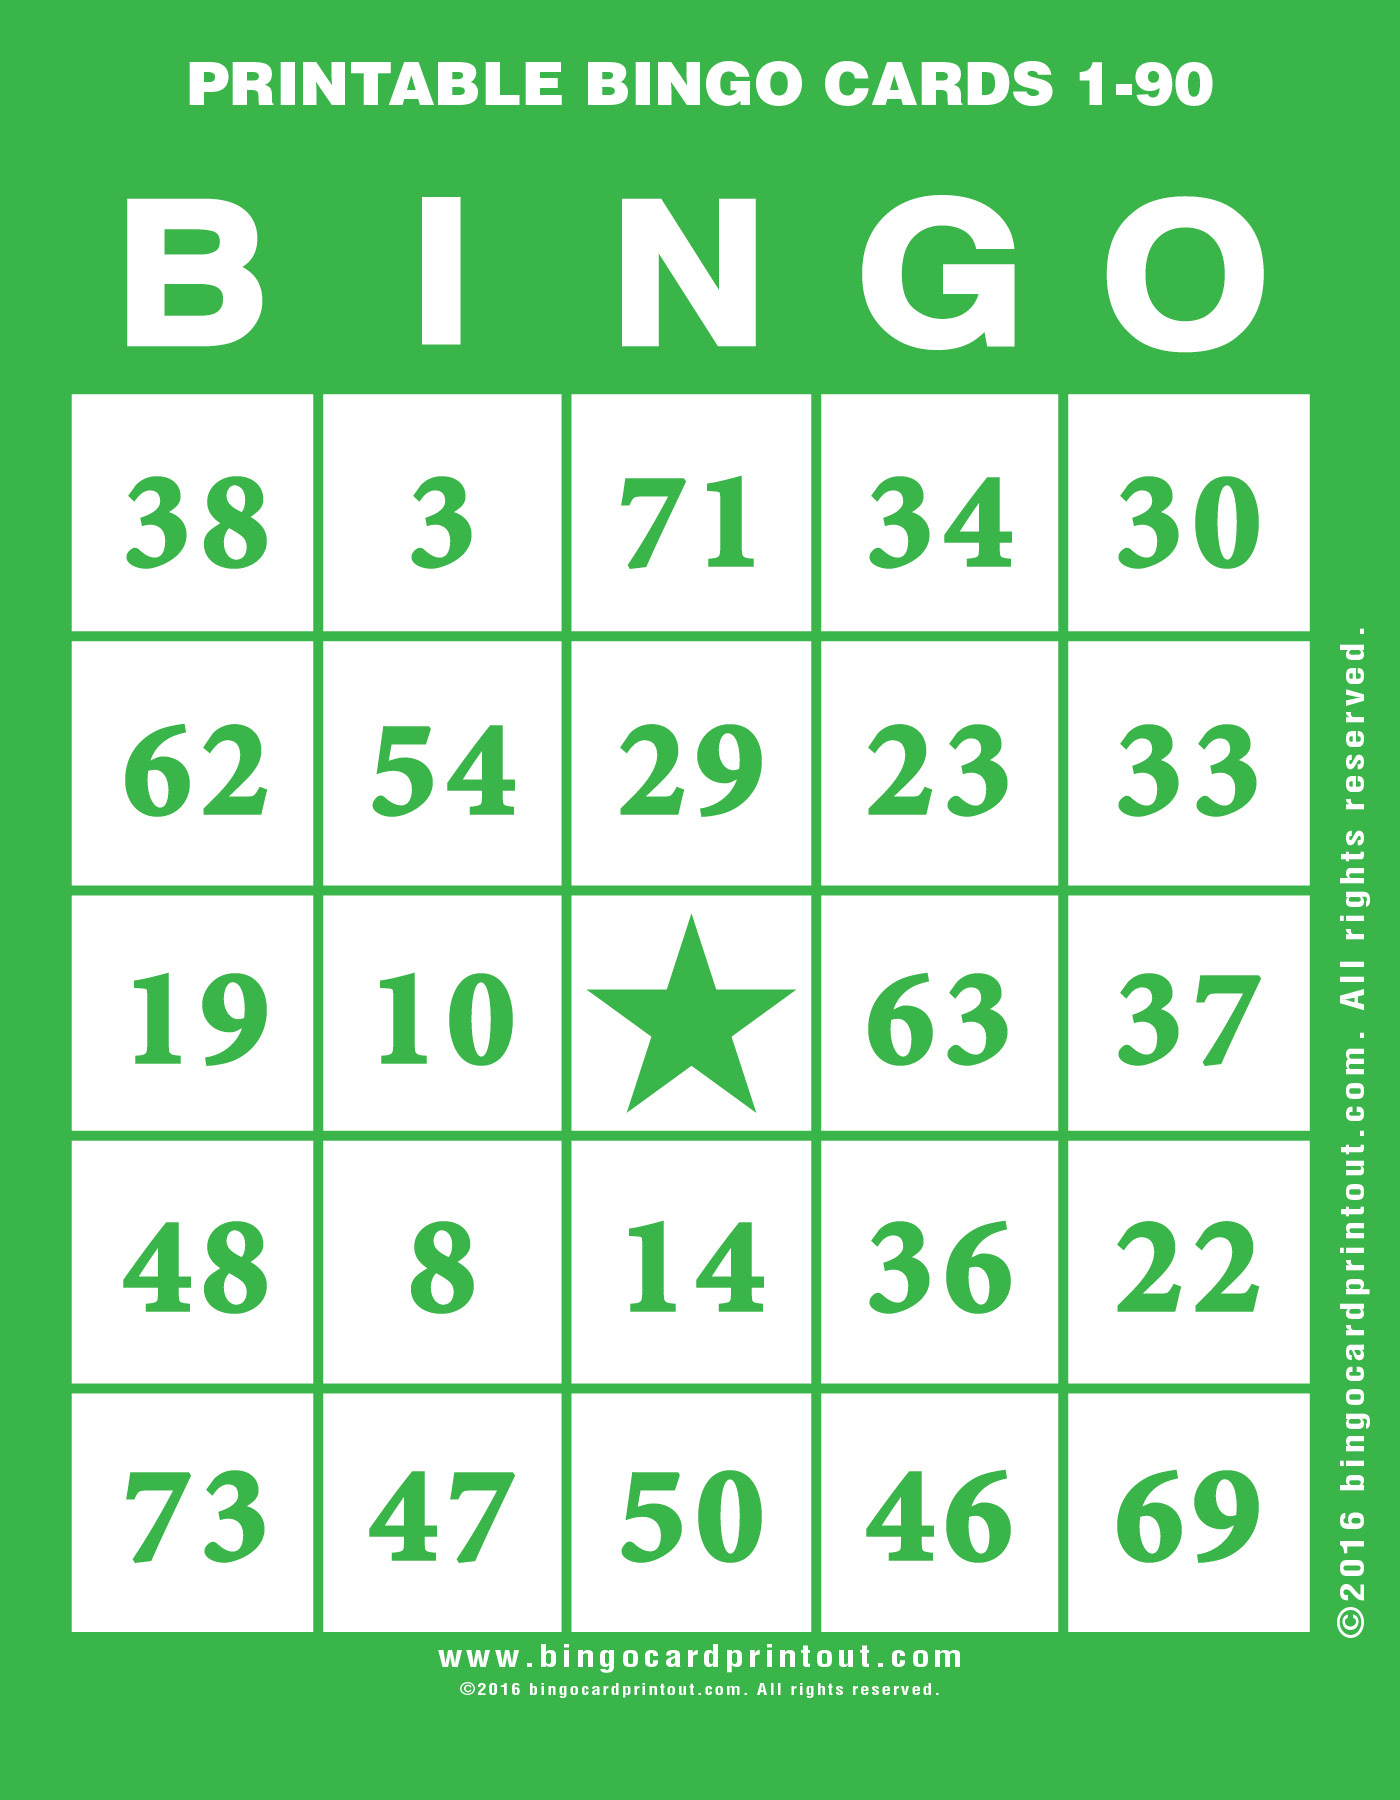 Printable Bingo Cards 1-90 - Bingocardprintout